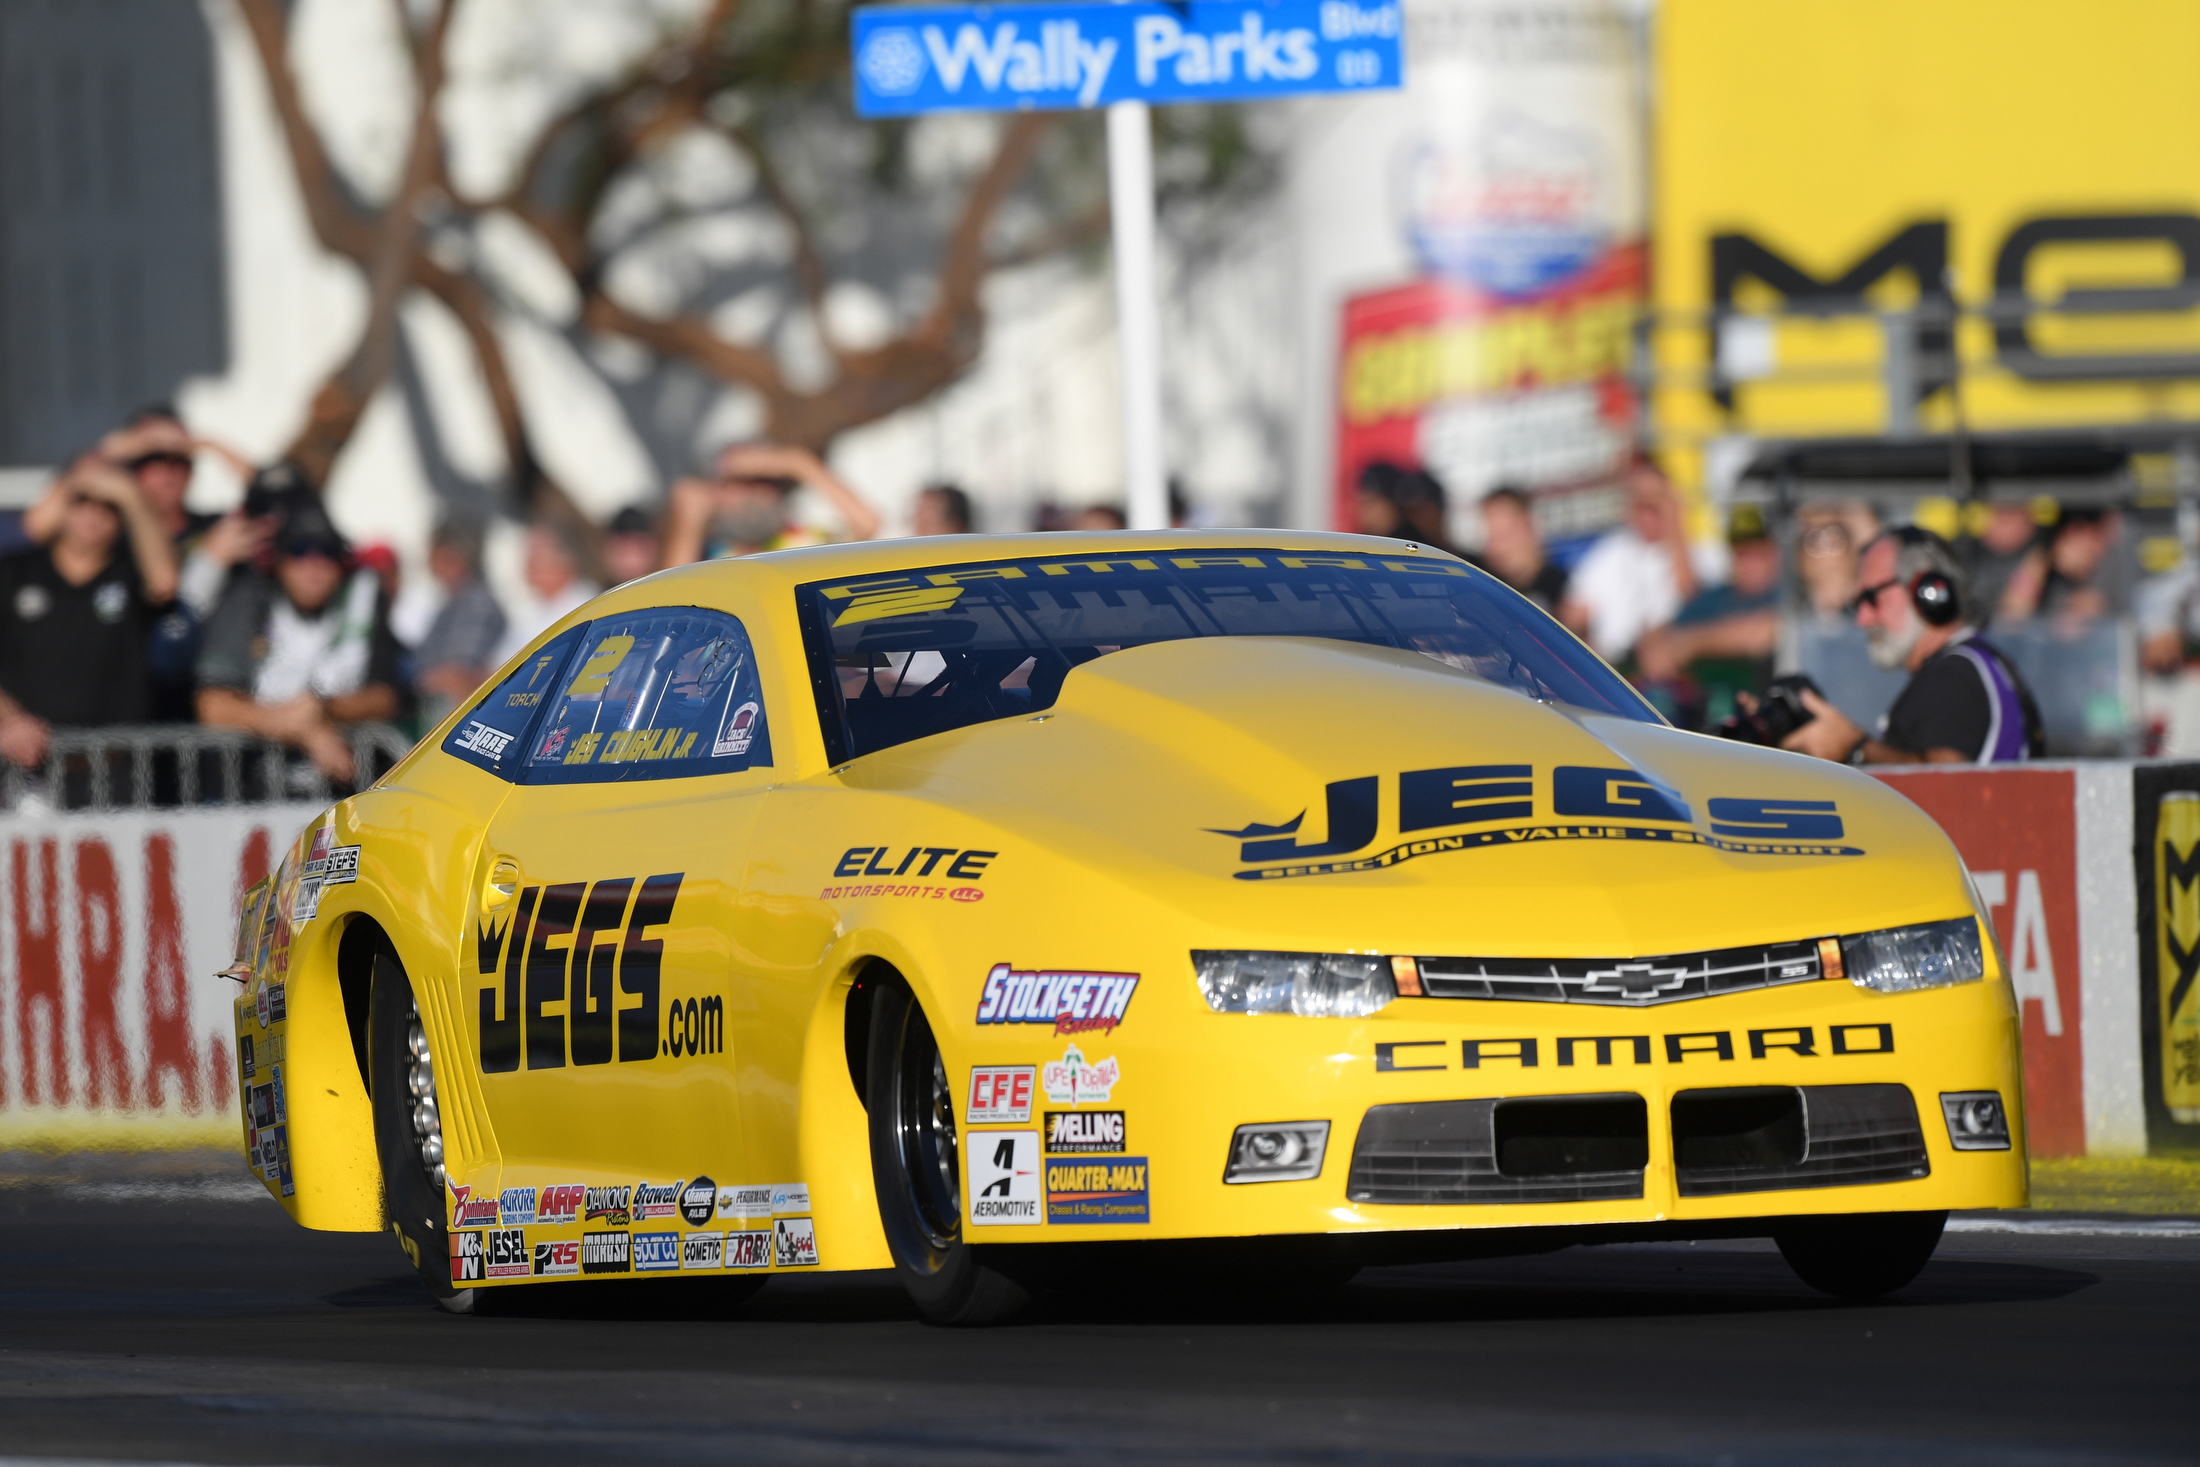 JEGS/Elite Performance Pro Stock driver Jeg Coughlin Jr. racing on Saturday at the Auto Club NHRA Finals